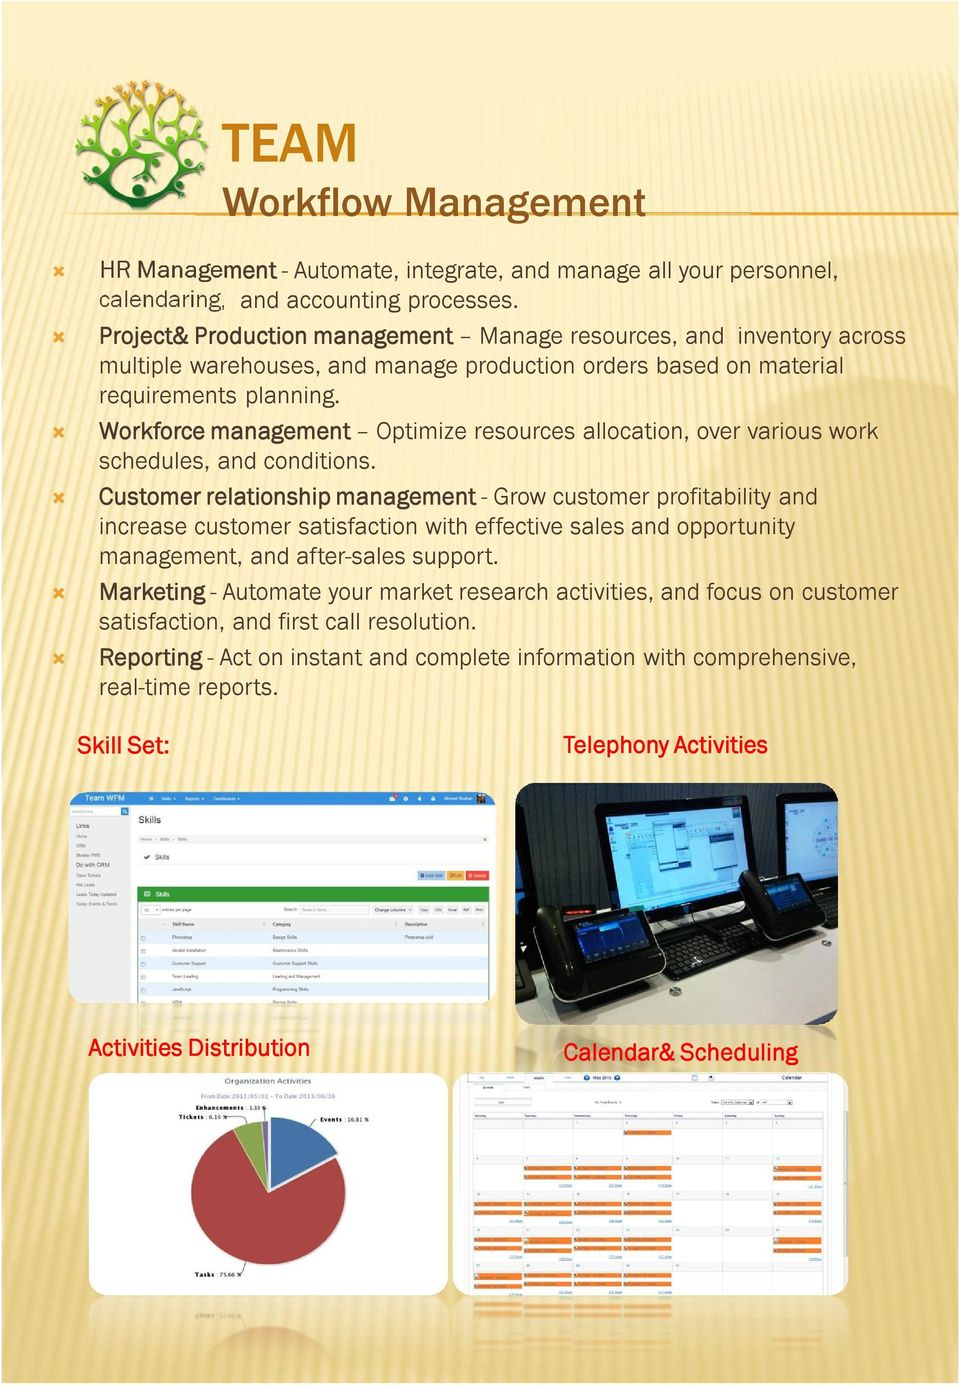 Workforce management Optimize resources allocation, over various work schedules, and conditions.